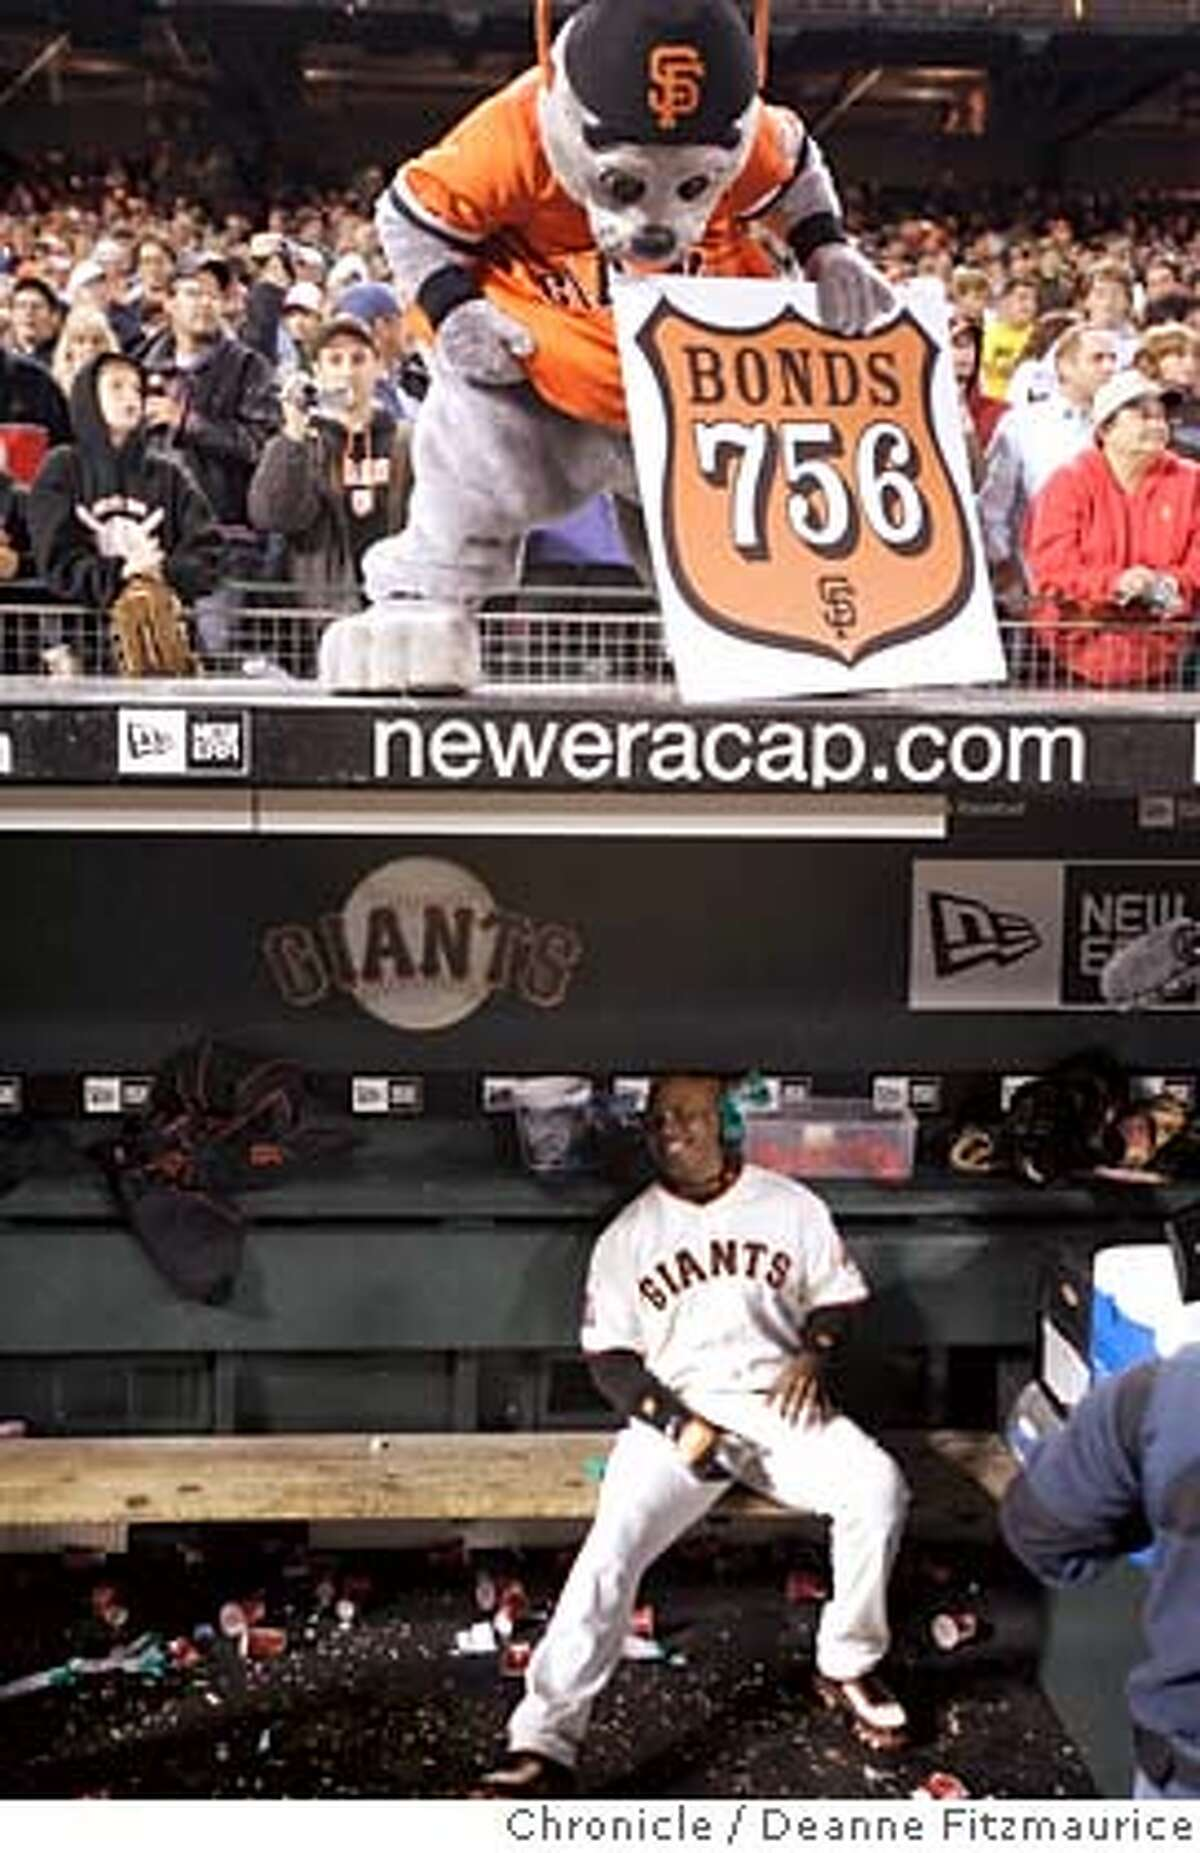 Lou Seal looks into the dugout after Barry Bonds hits home run number 756 in the bottom of the fifth inning. Washington Nationals play the San Francisco Giants at AT&T Park in San Francisco, CA, on Tuesday, August 07, 2007. Deanne Fitzmaurice / The Chronicle ** (cq)